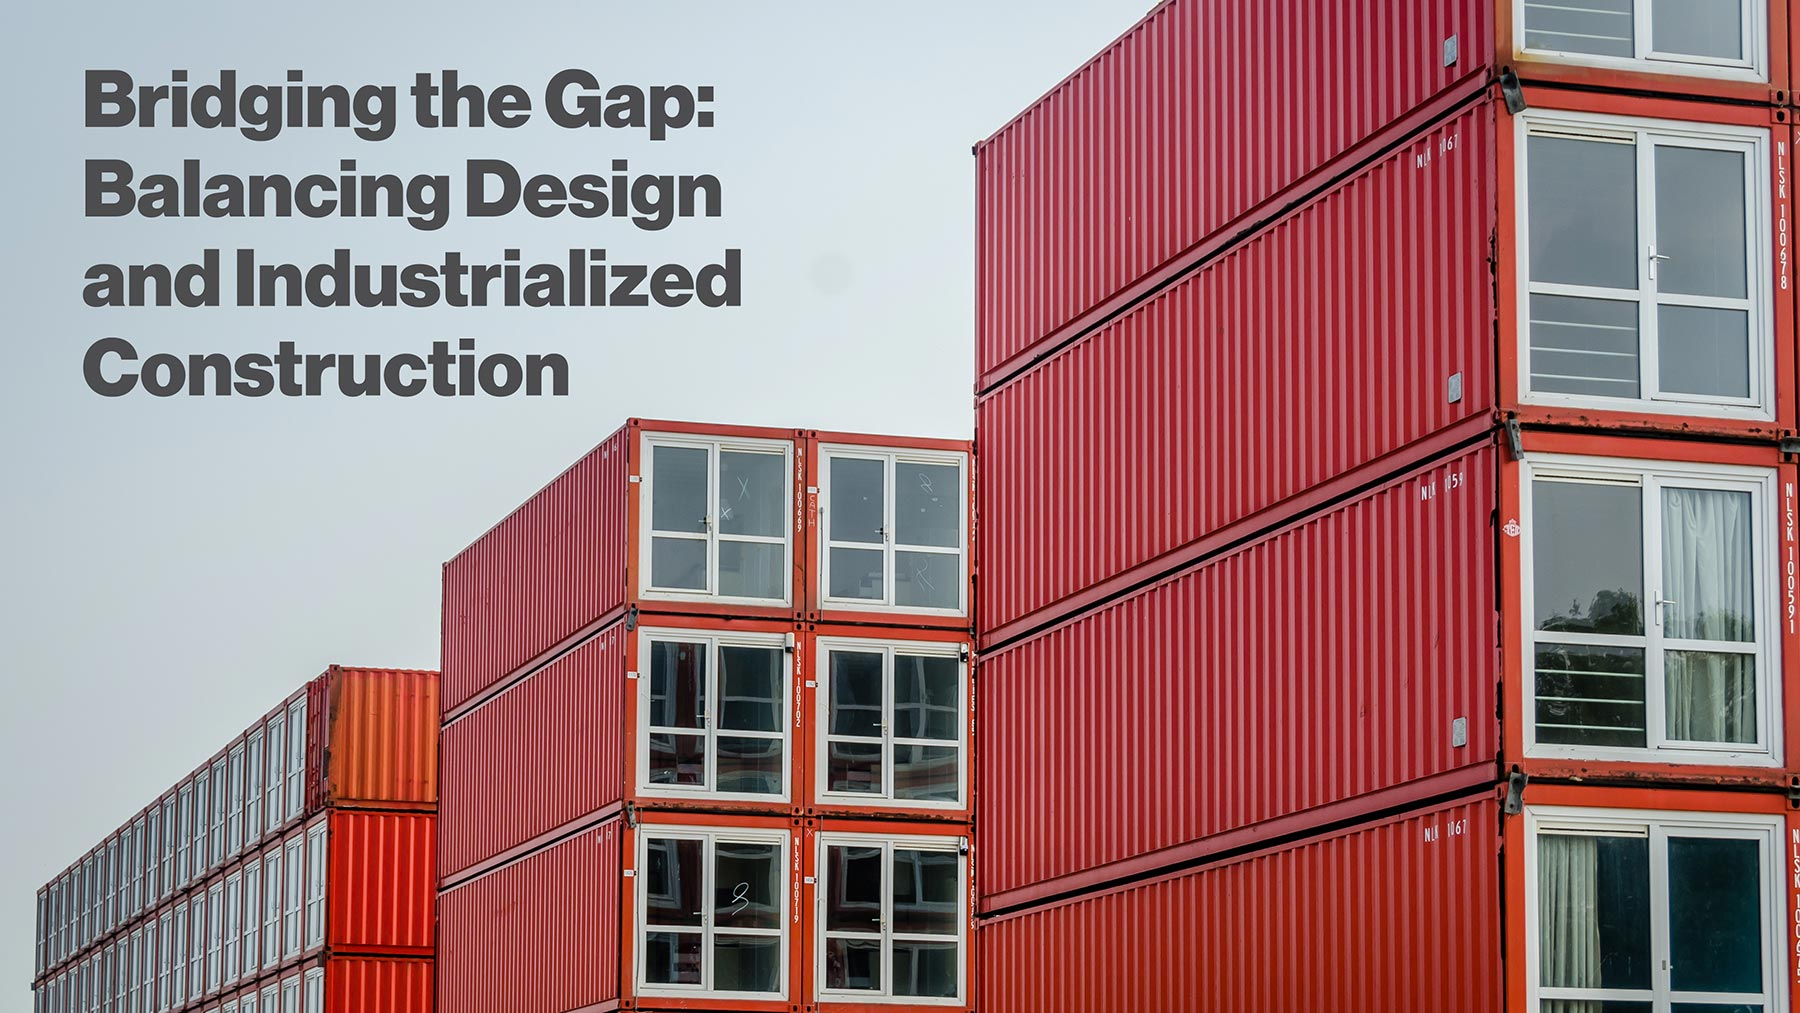 [White Paper] Bridging the Gap: Balancing Design and Industrialized Construction